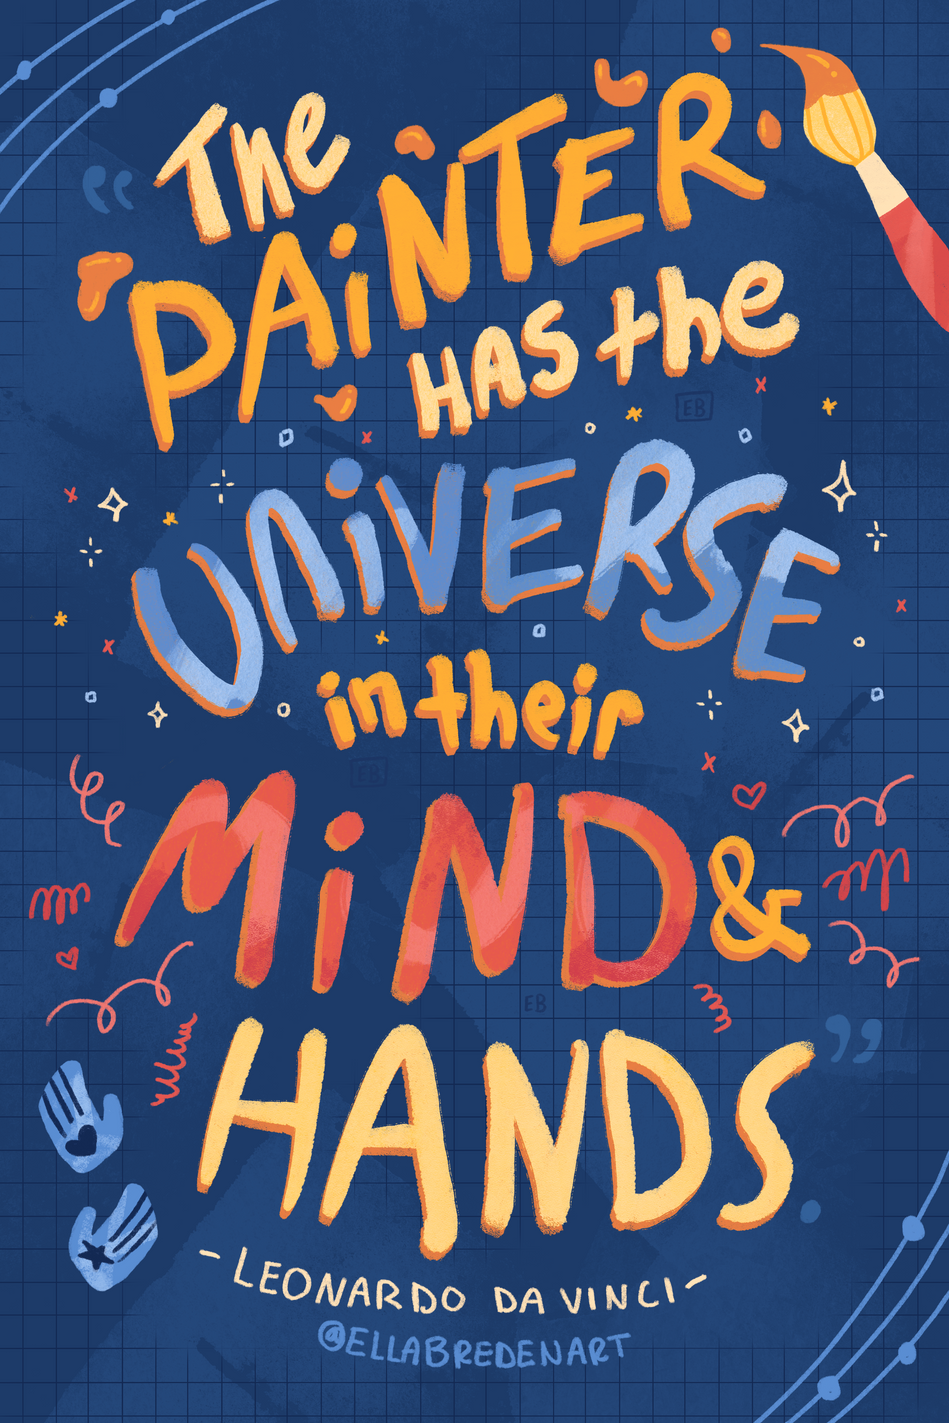 """""""The painter has the universe in their mind and hands."""" - Leonardo Da Vinci Lettering"""